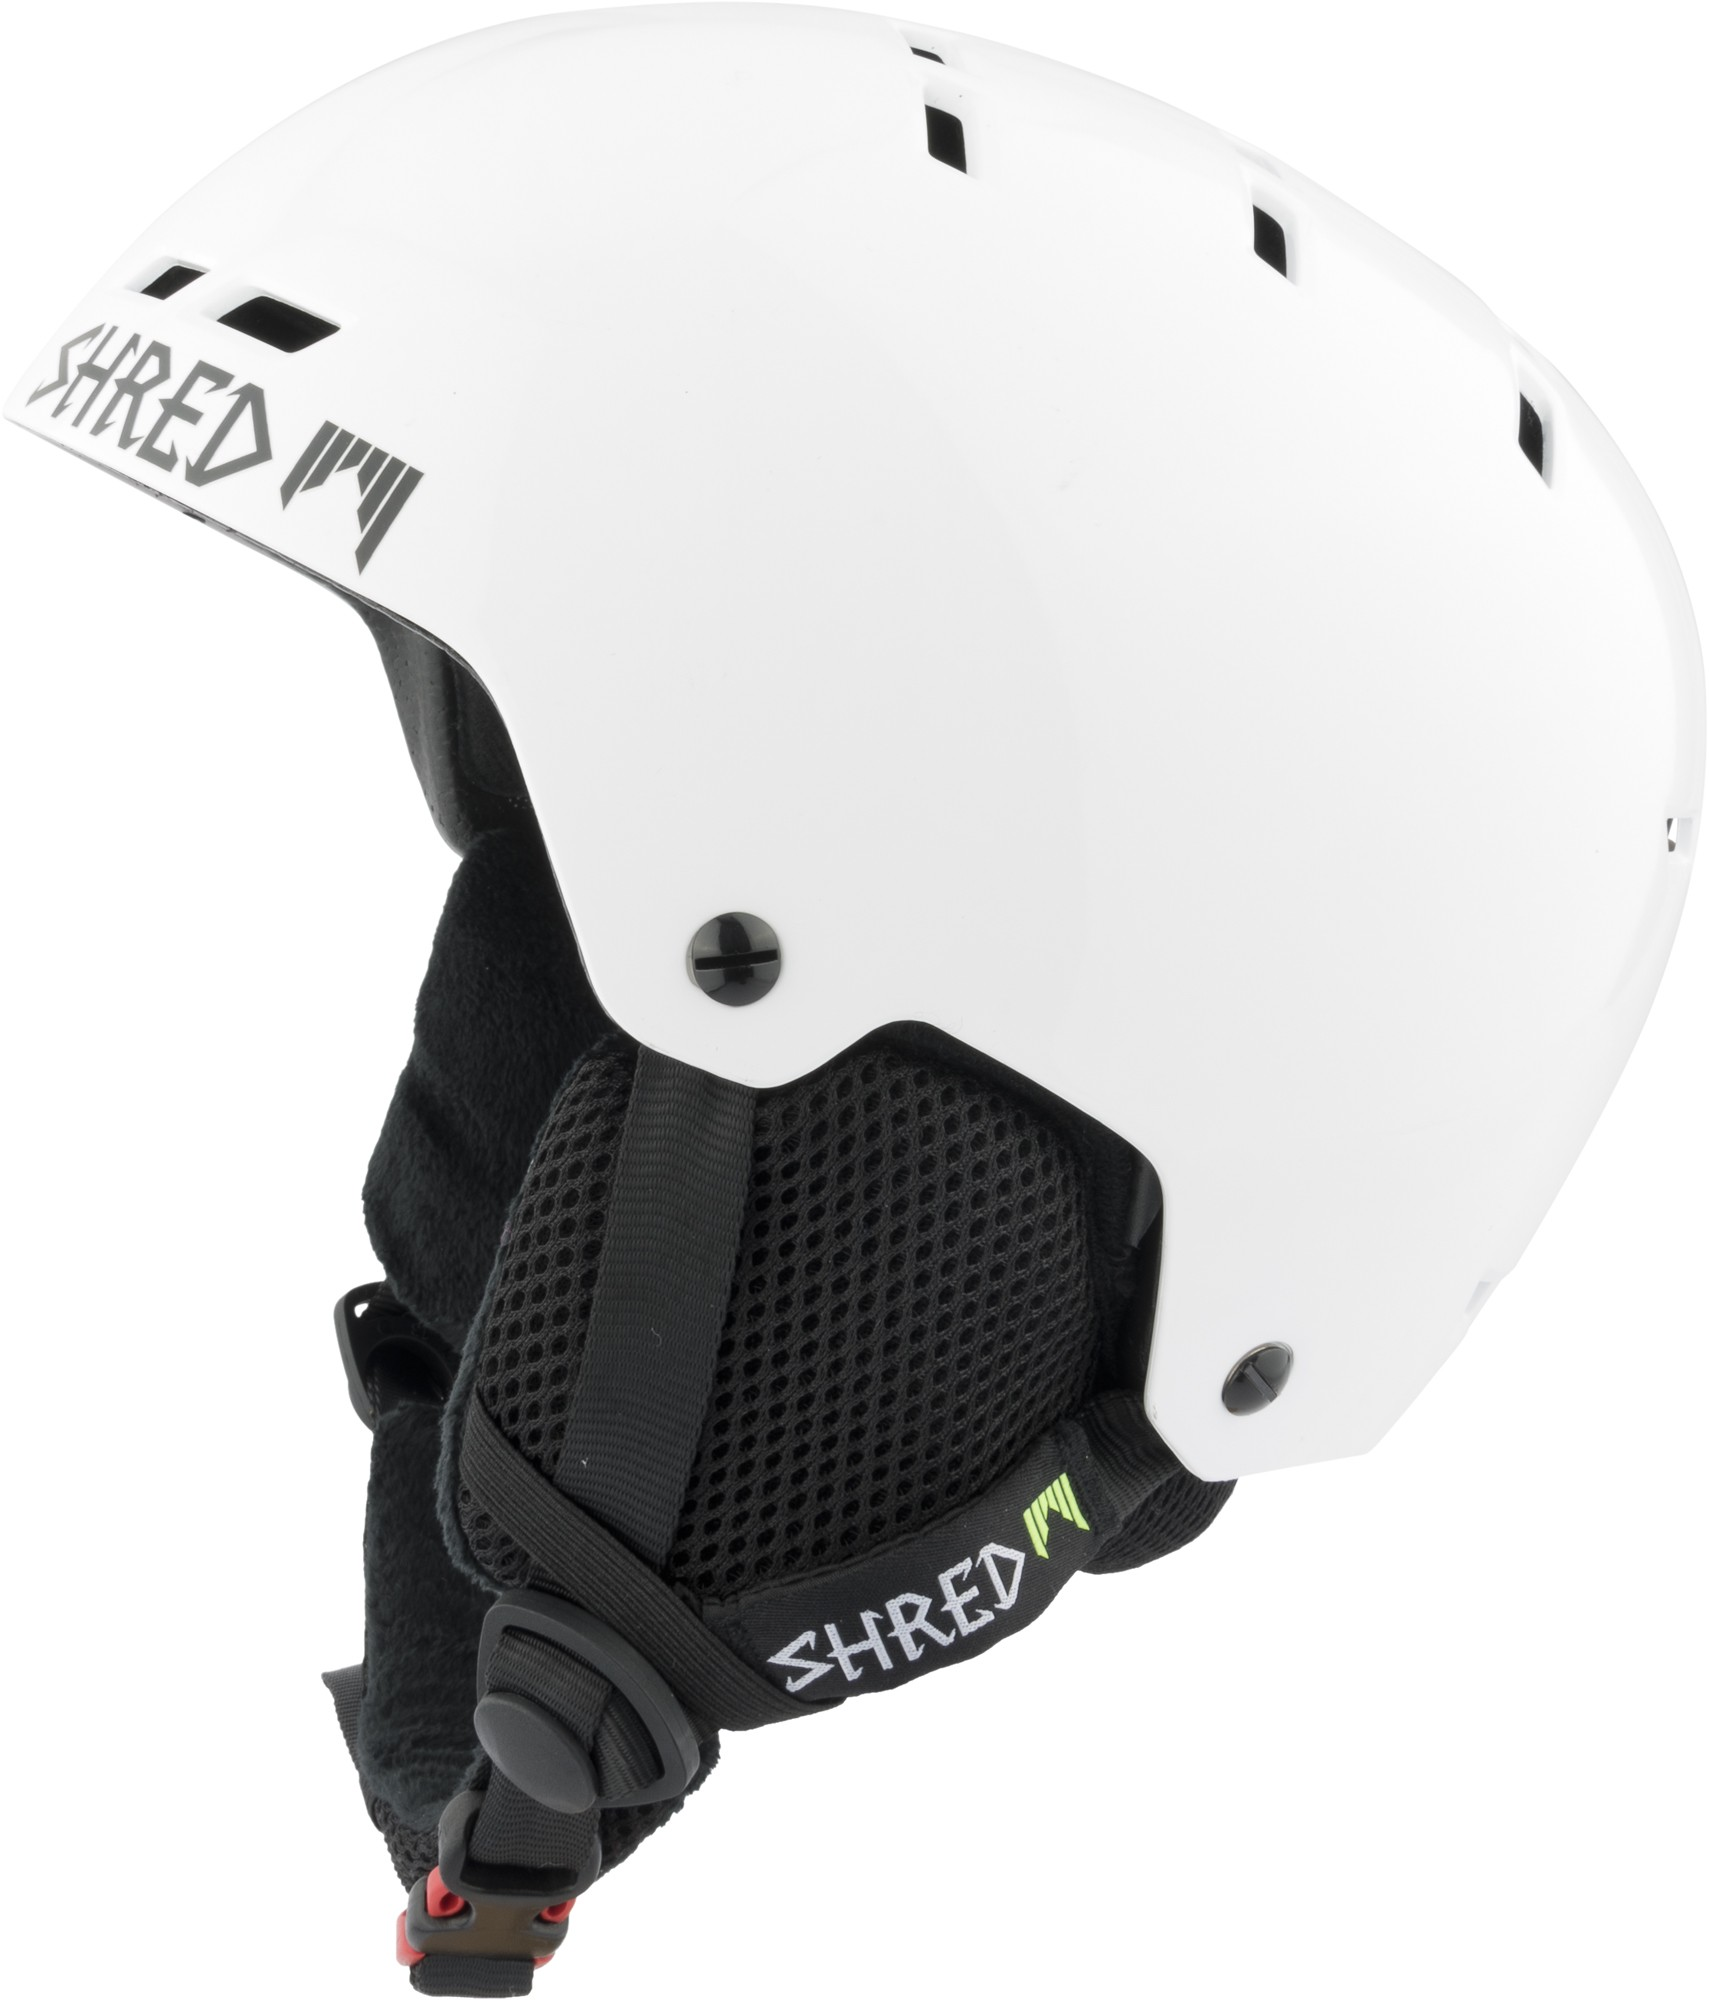 Shred BUMPER warm WHITEOUT ski helmet, 2018